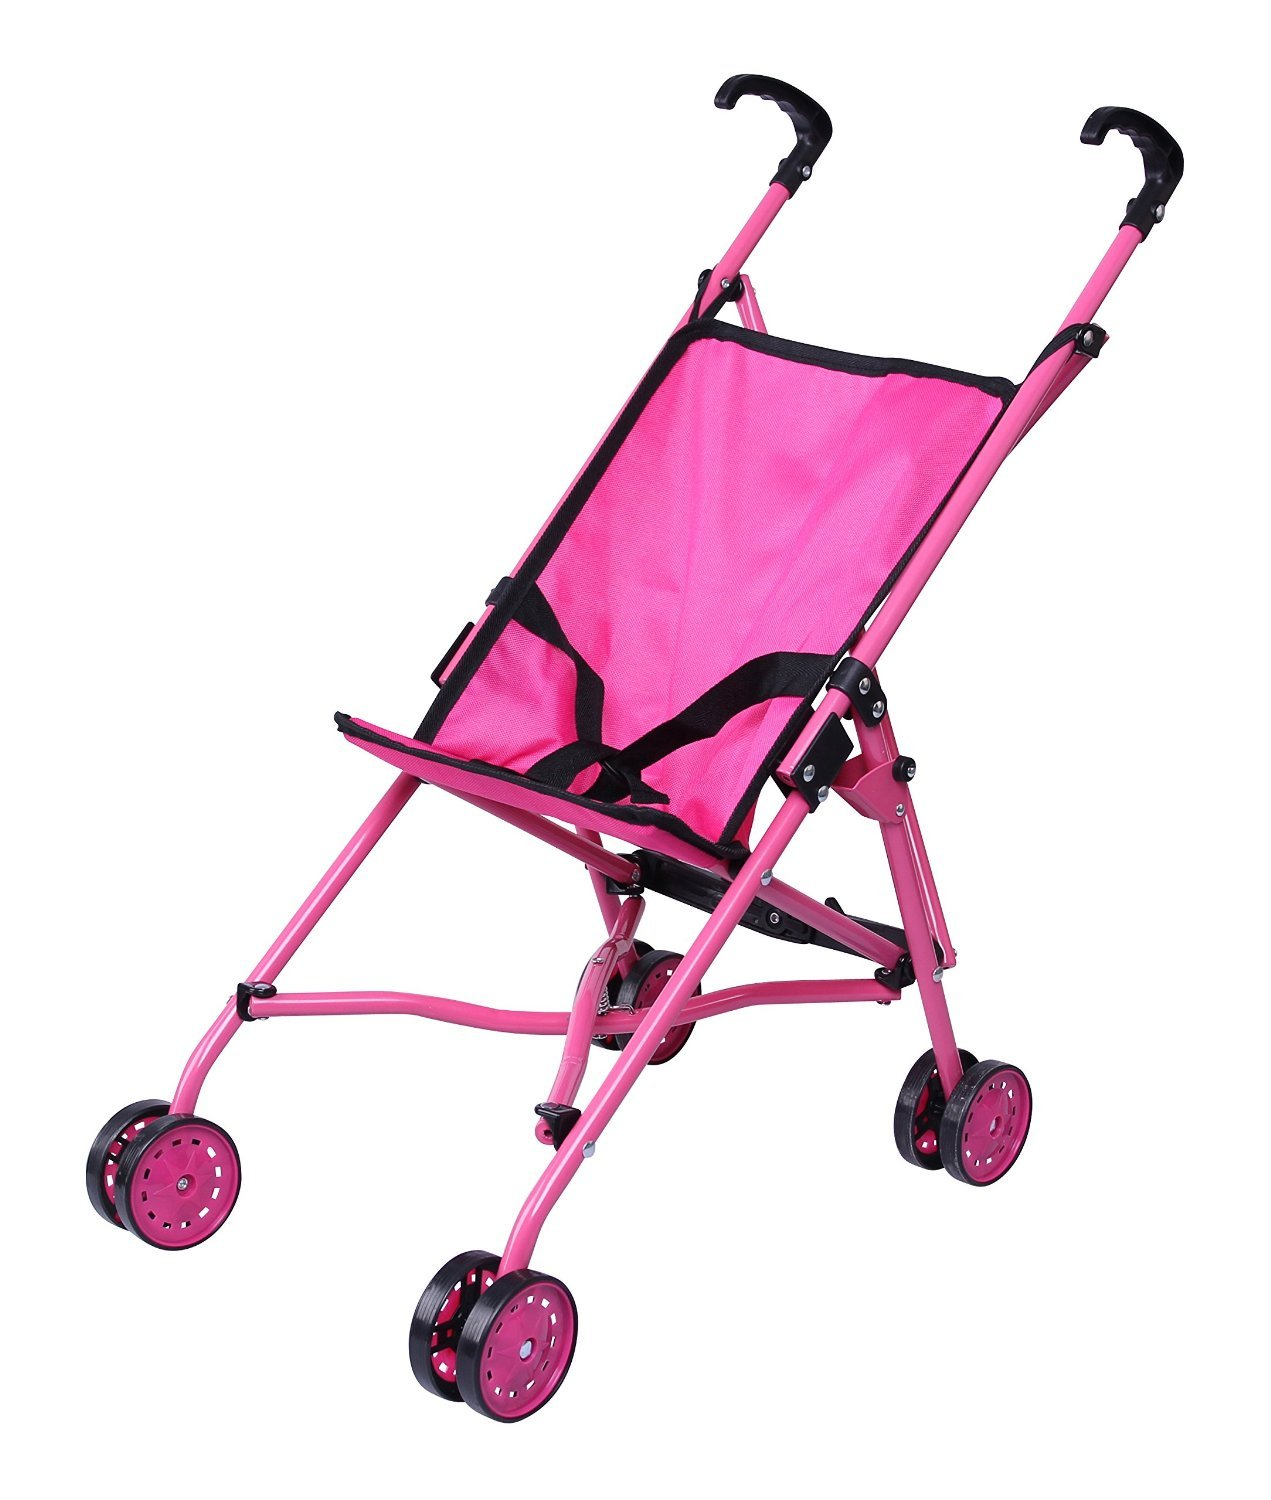 Precious Toys Hot Pink Umbrella Doll Stroller, Black Handles and Hot Pink Frame - 0128A by Precious toys